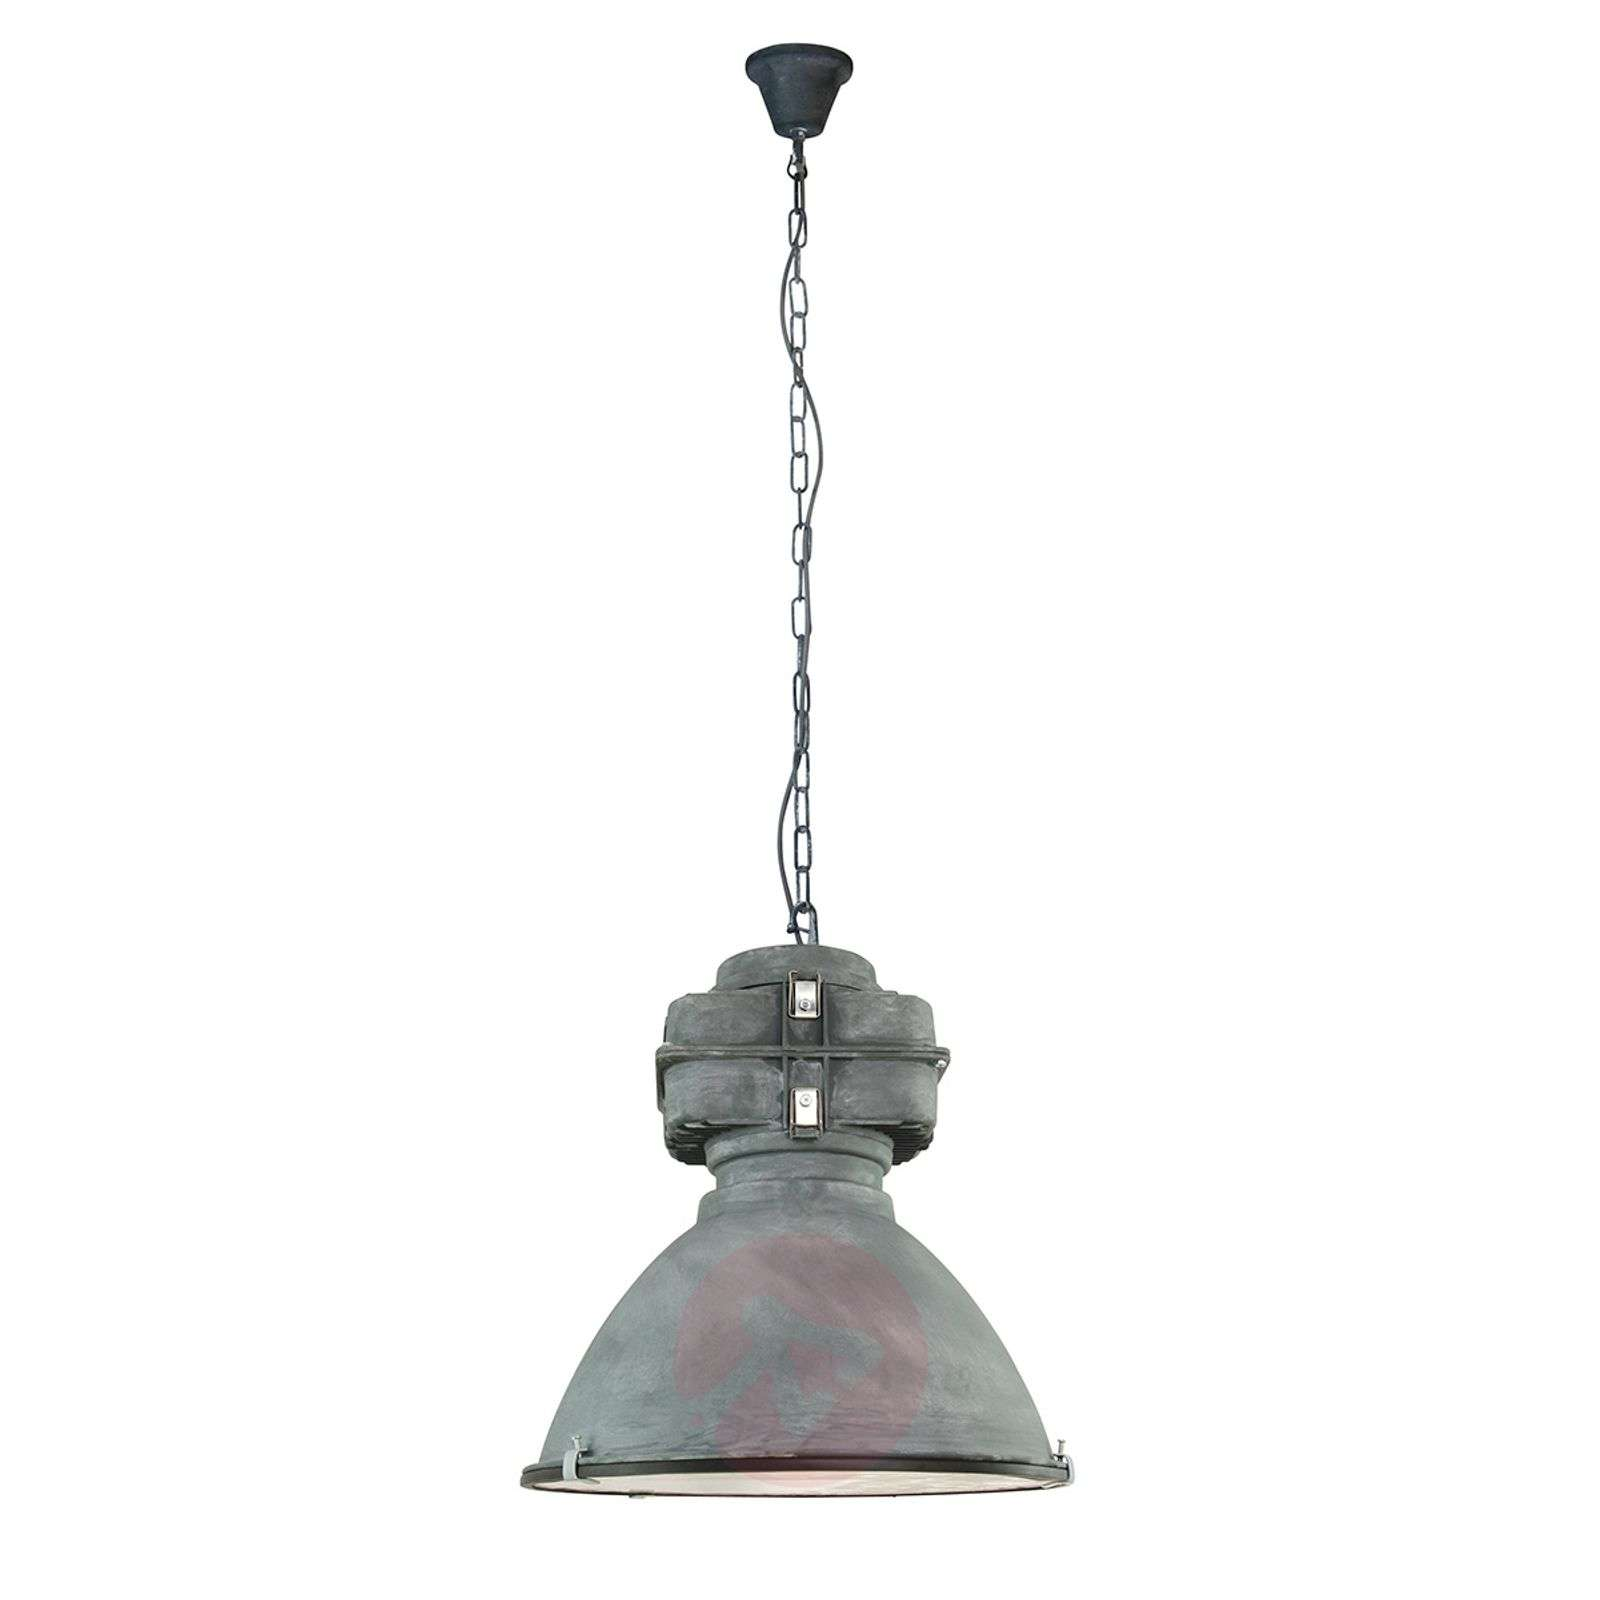 Anouk vintage hanging lamp with diffuser-1509039-01